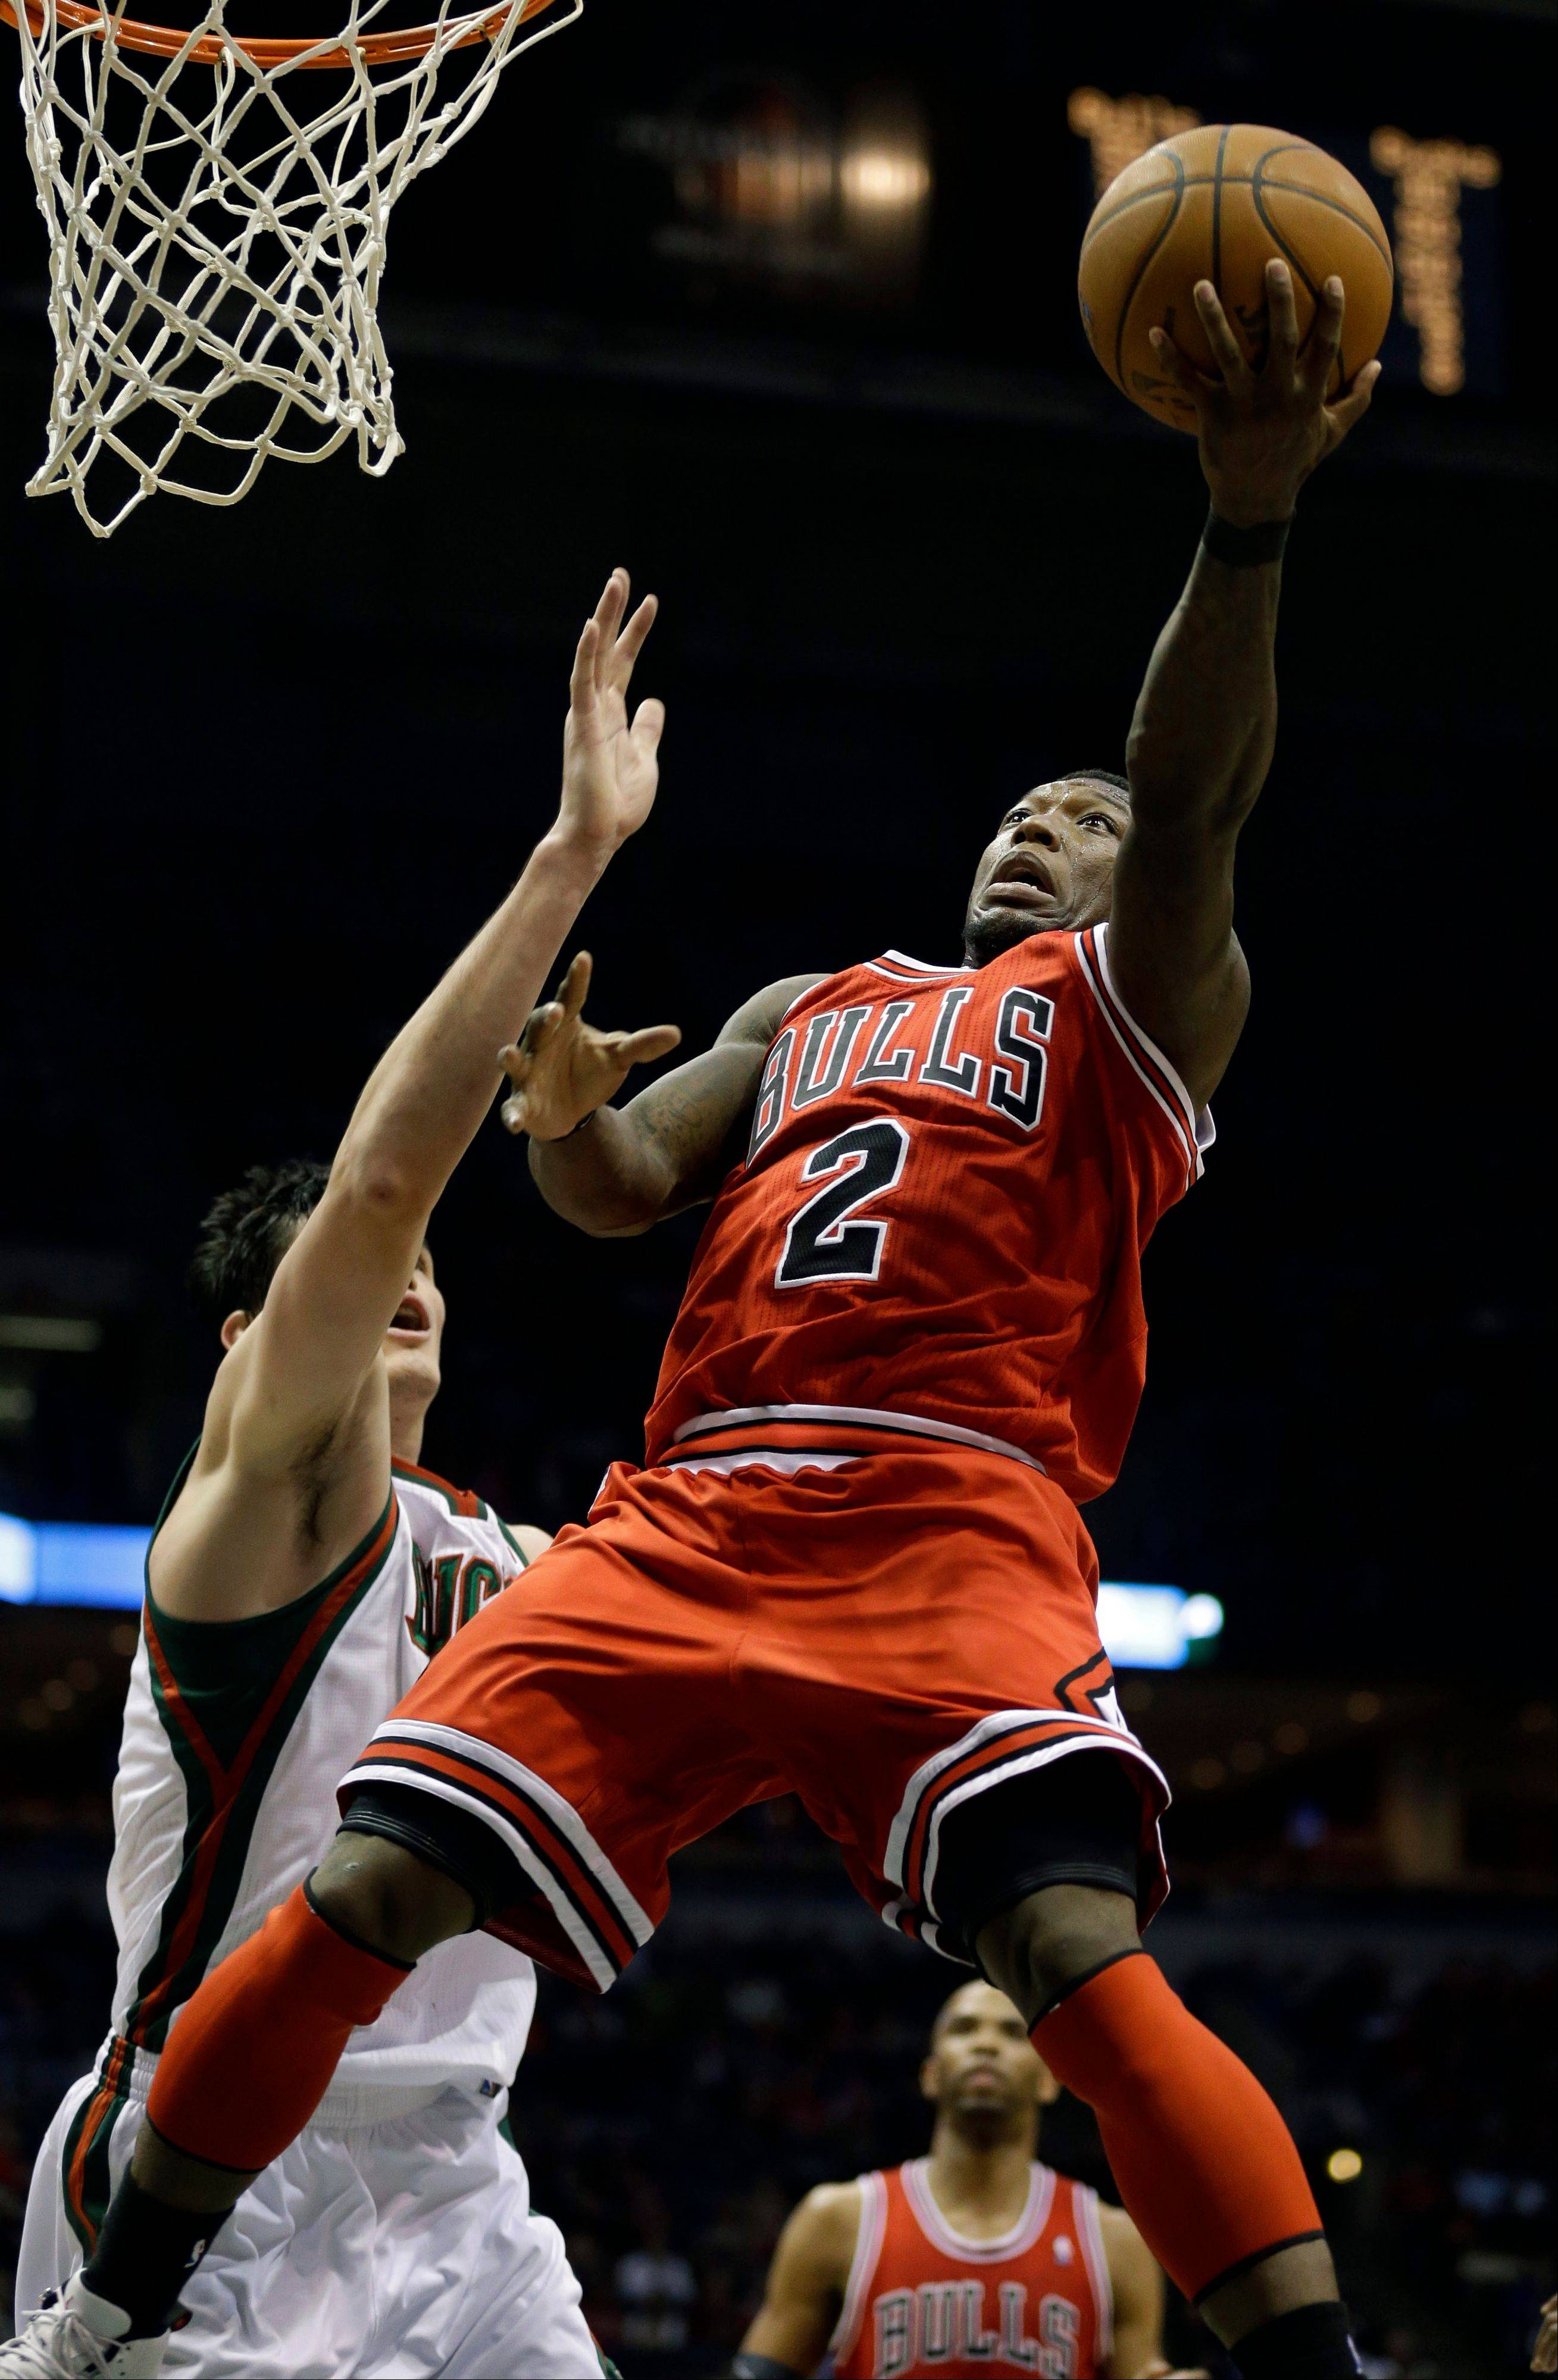 Nate Robinson (2) puts up a shot against Milwaukee�s Ersan Ilyasova, left, during the Bulls� win over the Bucks Wednesday night in Milwaukee. Robinson scored a total of 24 points during the game.